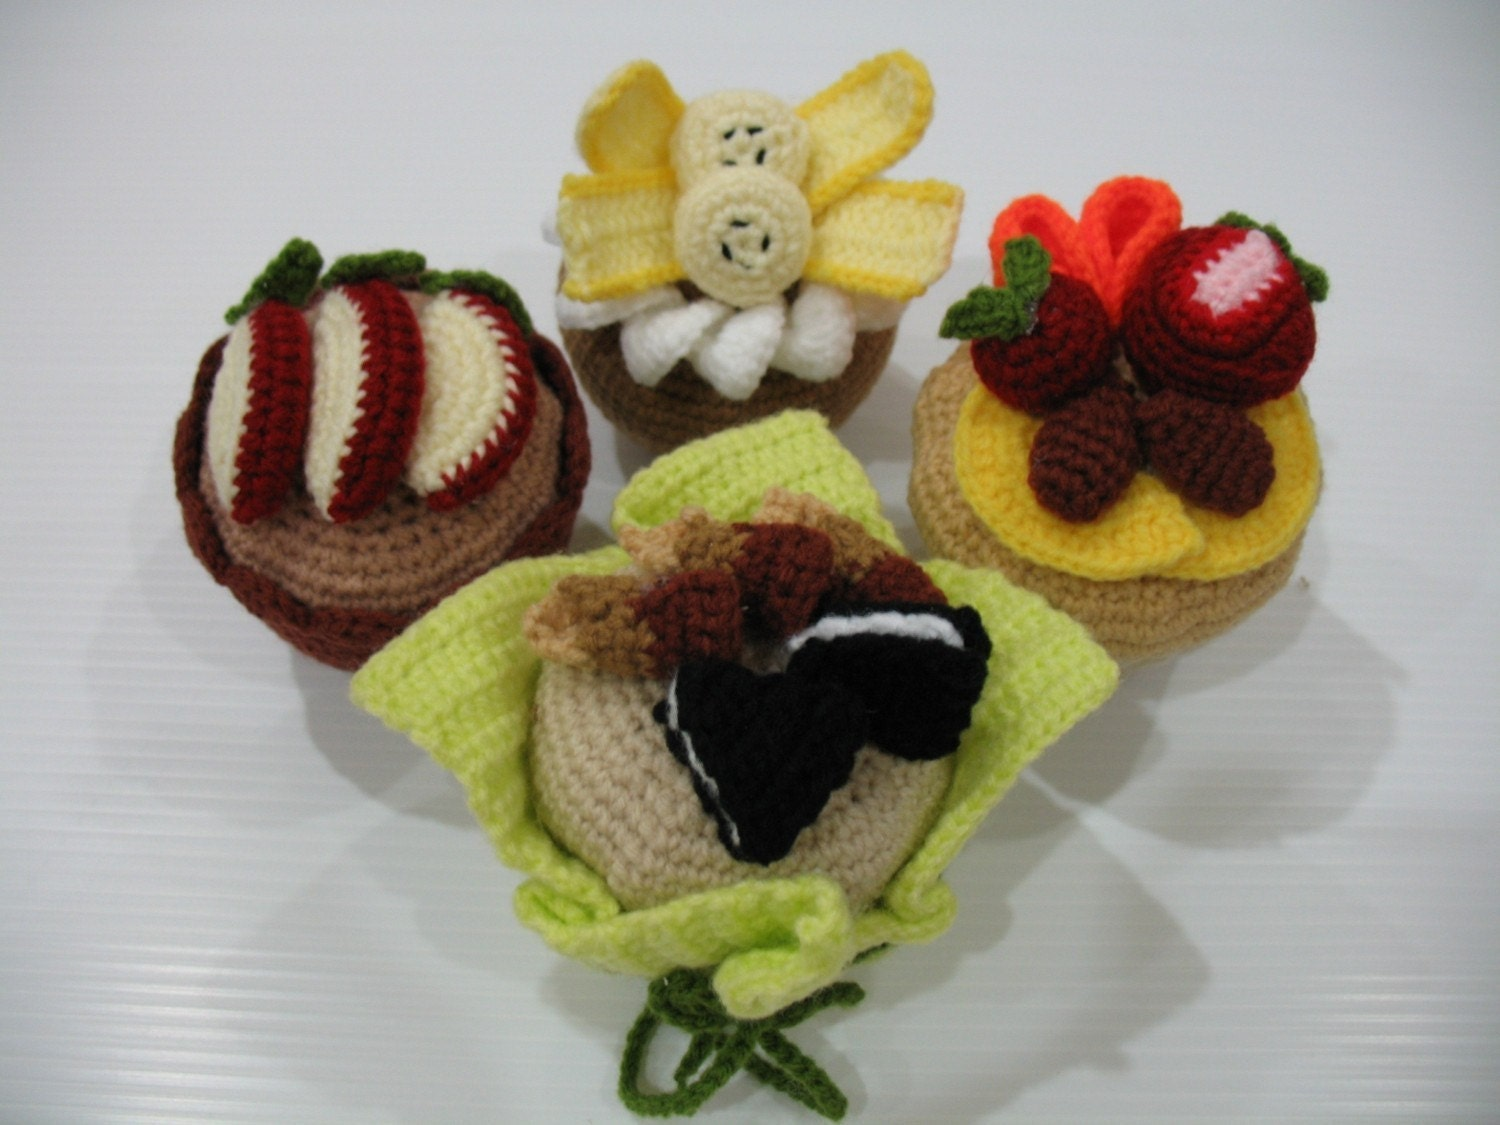 Crochet Pattern - Delicious MUFFIN - Play Food/Toys -PDF